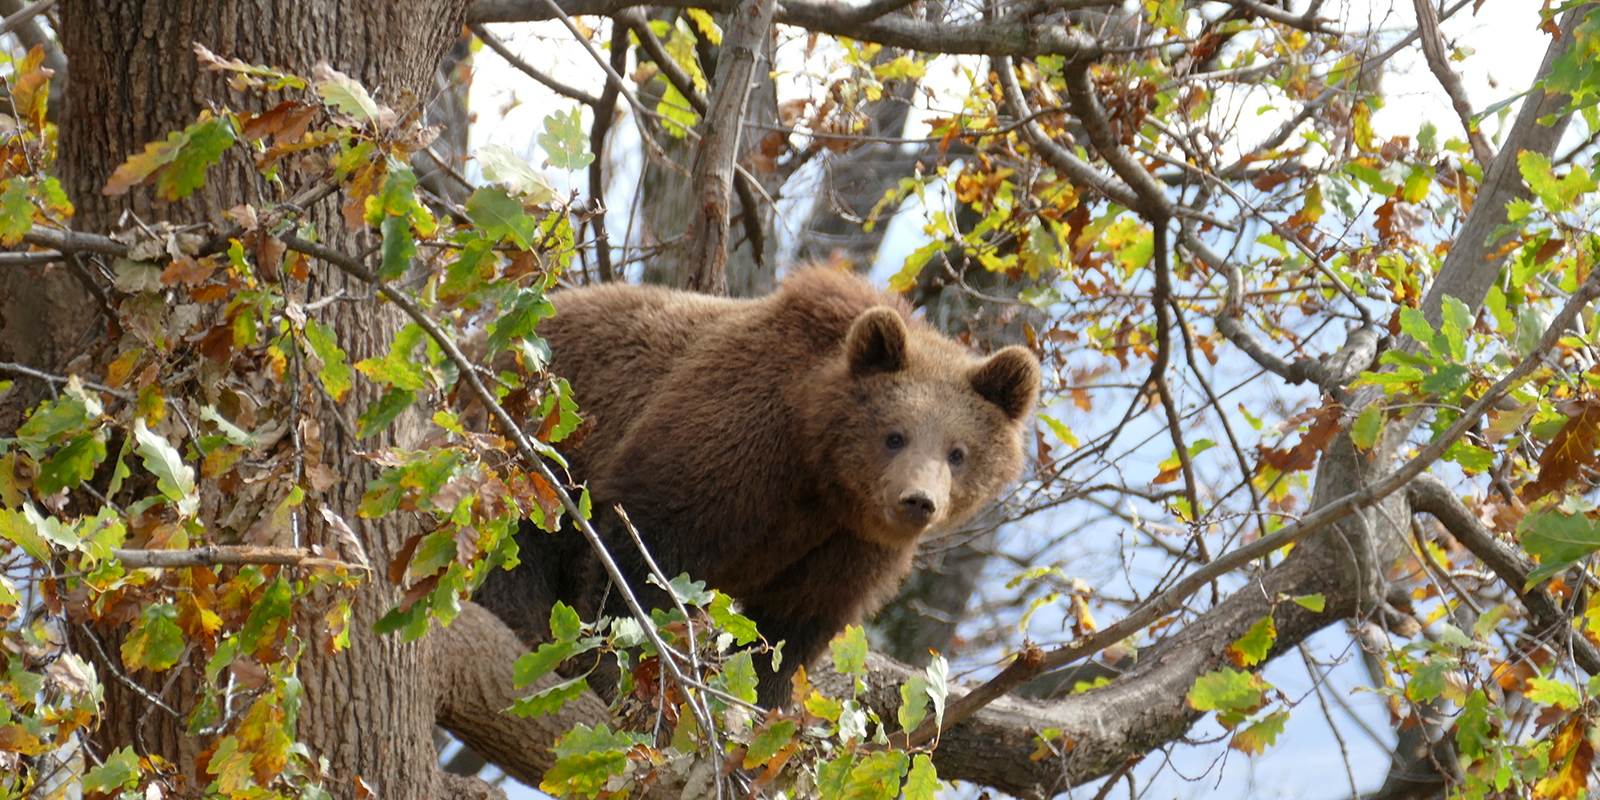 Bear sanctuary in Romania: sufficient space and possibilities of withdrawal for rescued brown bears